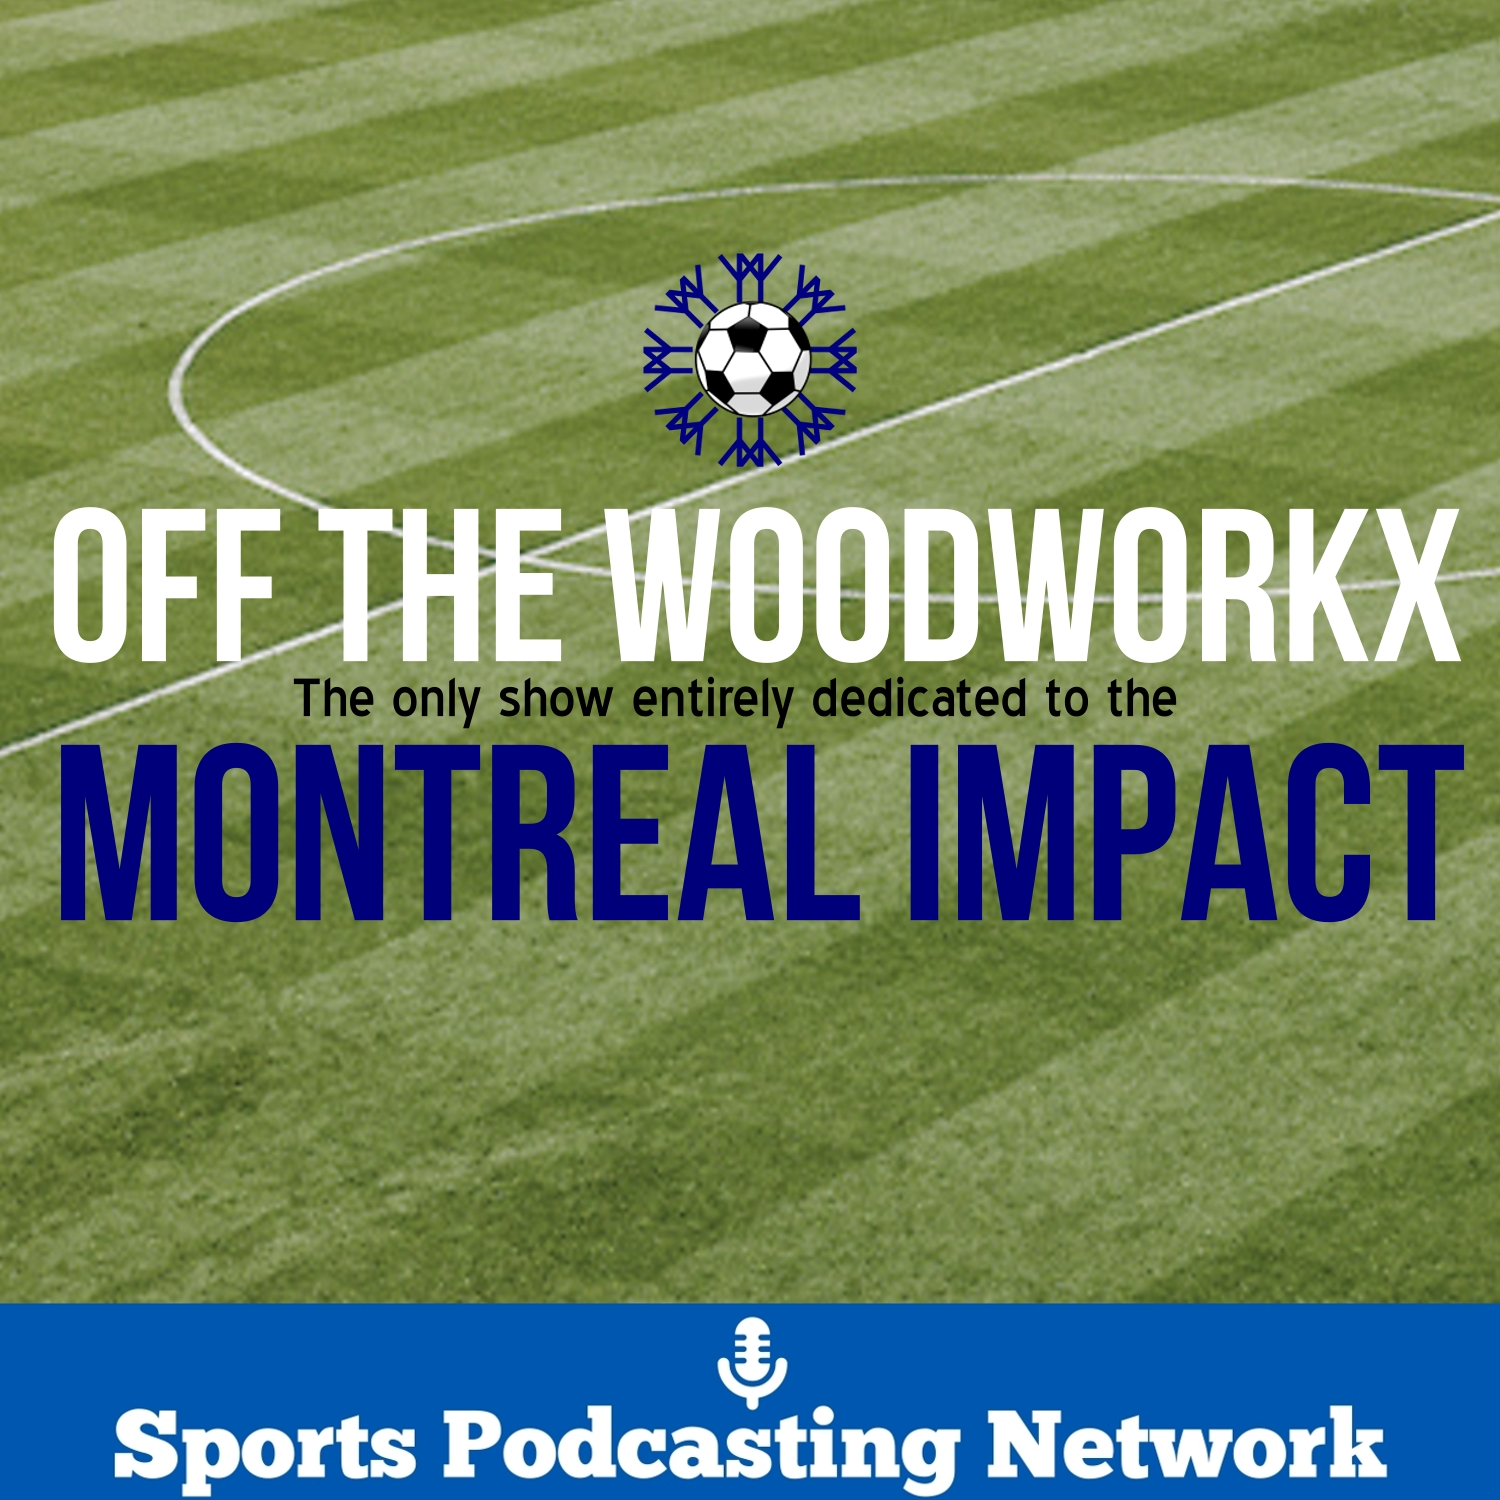 Off the Woodworkx – Sports Podcasting Network